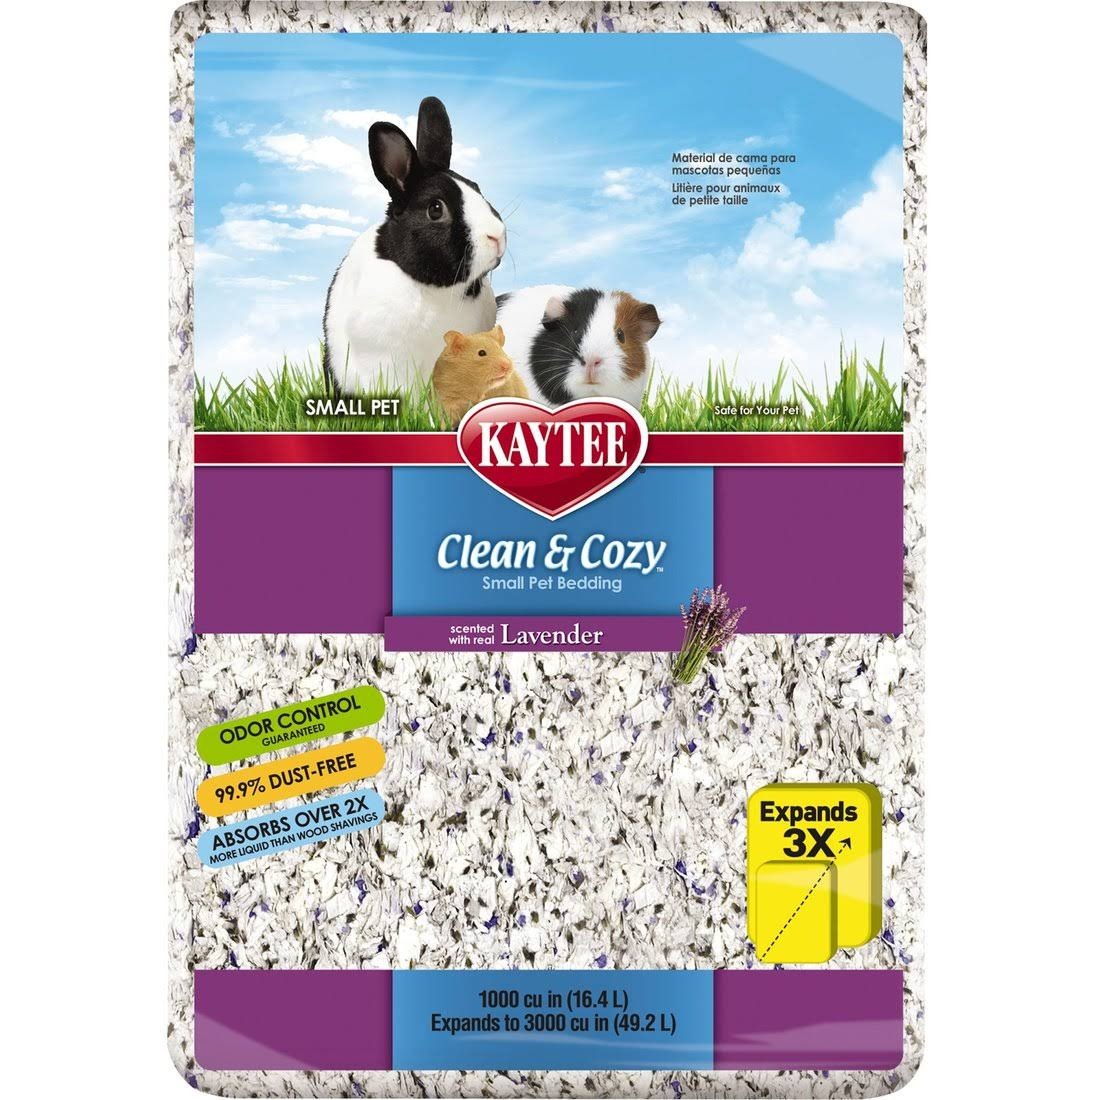 Kaytee Clean And Cozy Bedding - Lavender, 1000 cu in